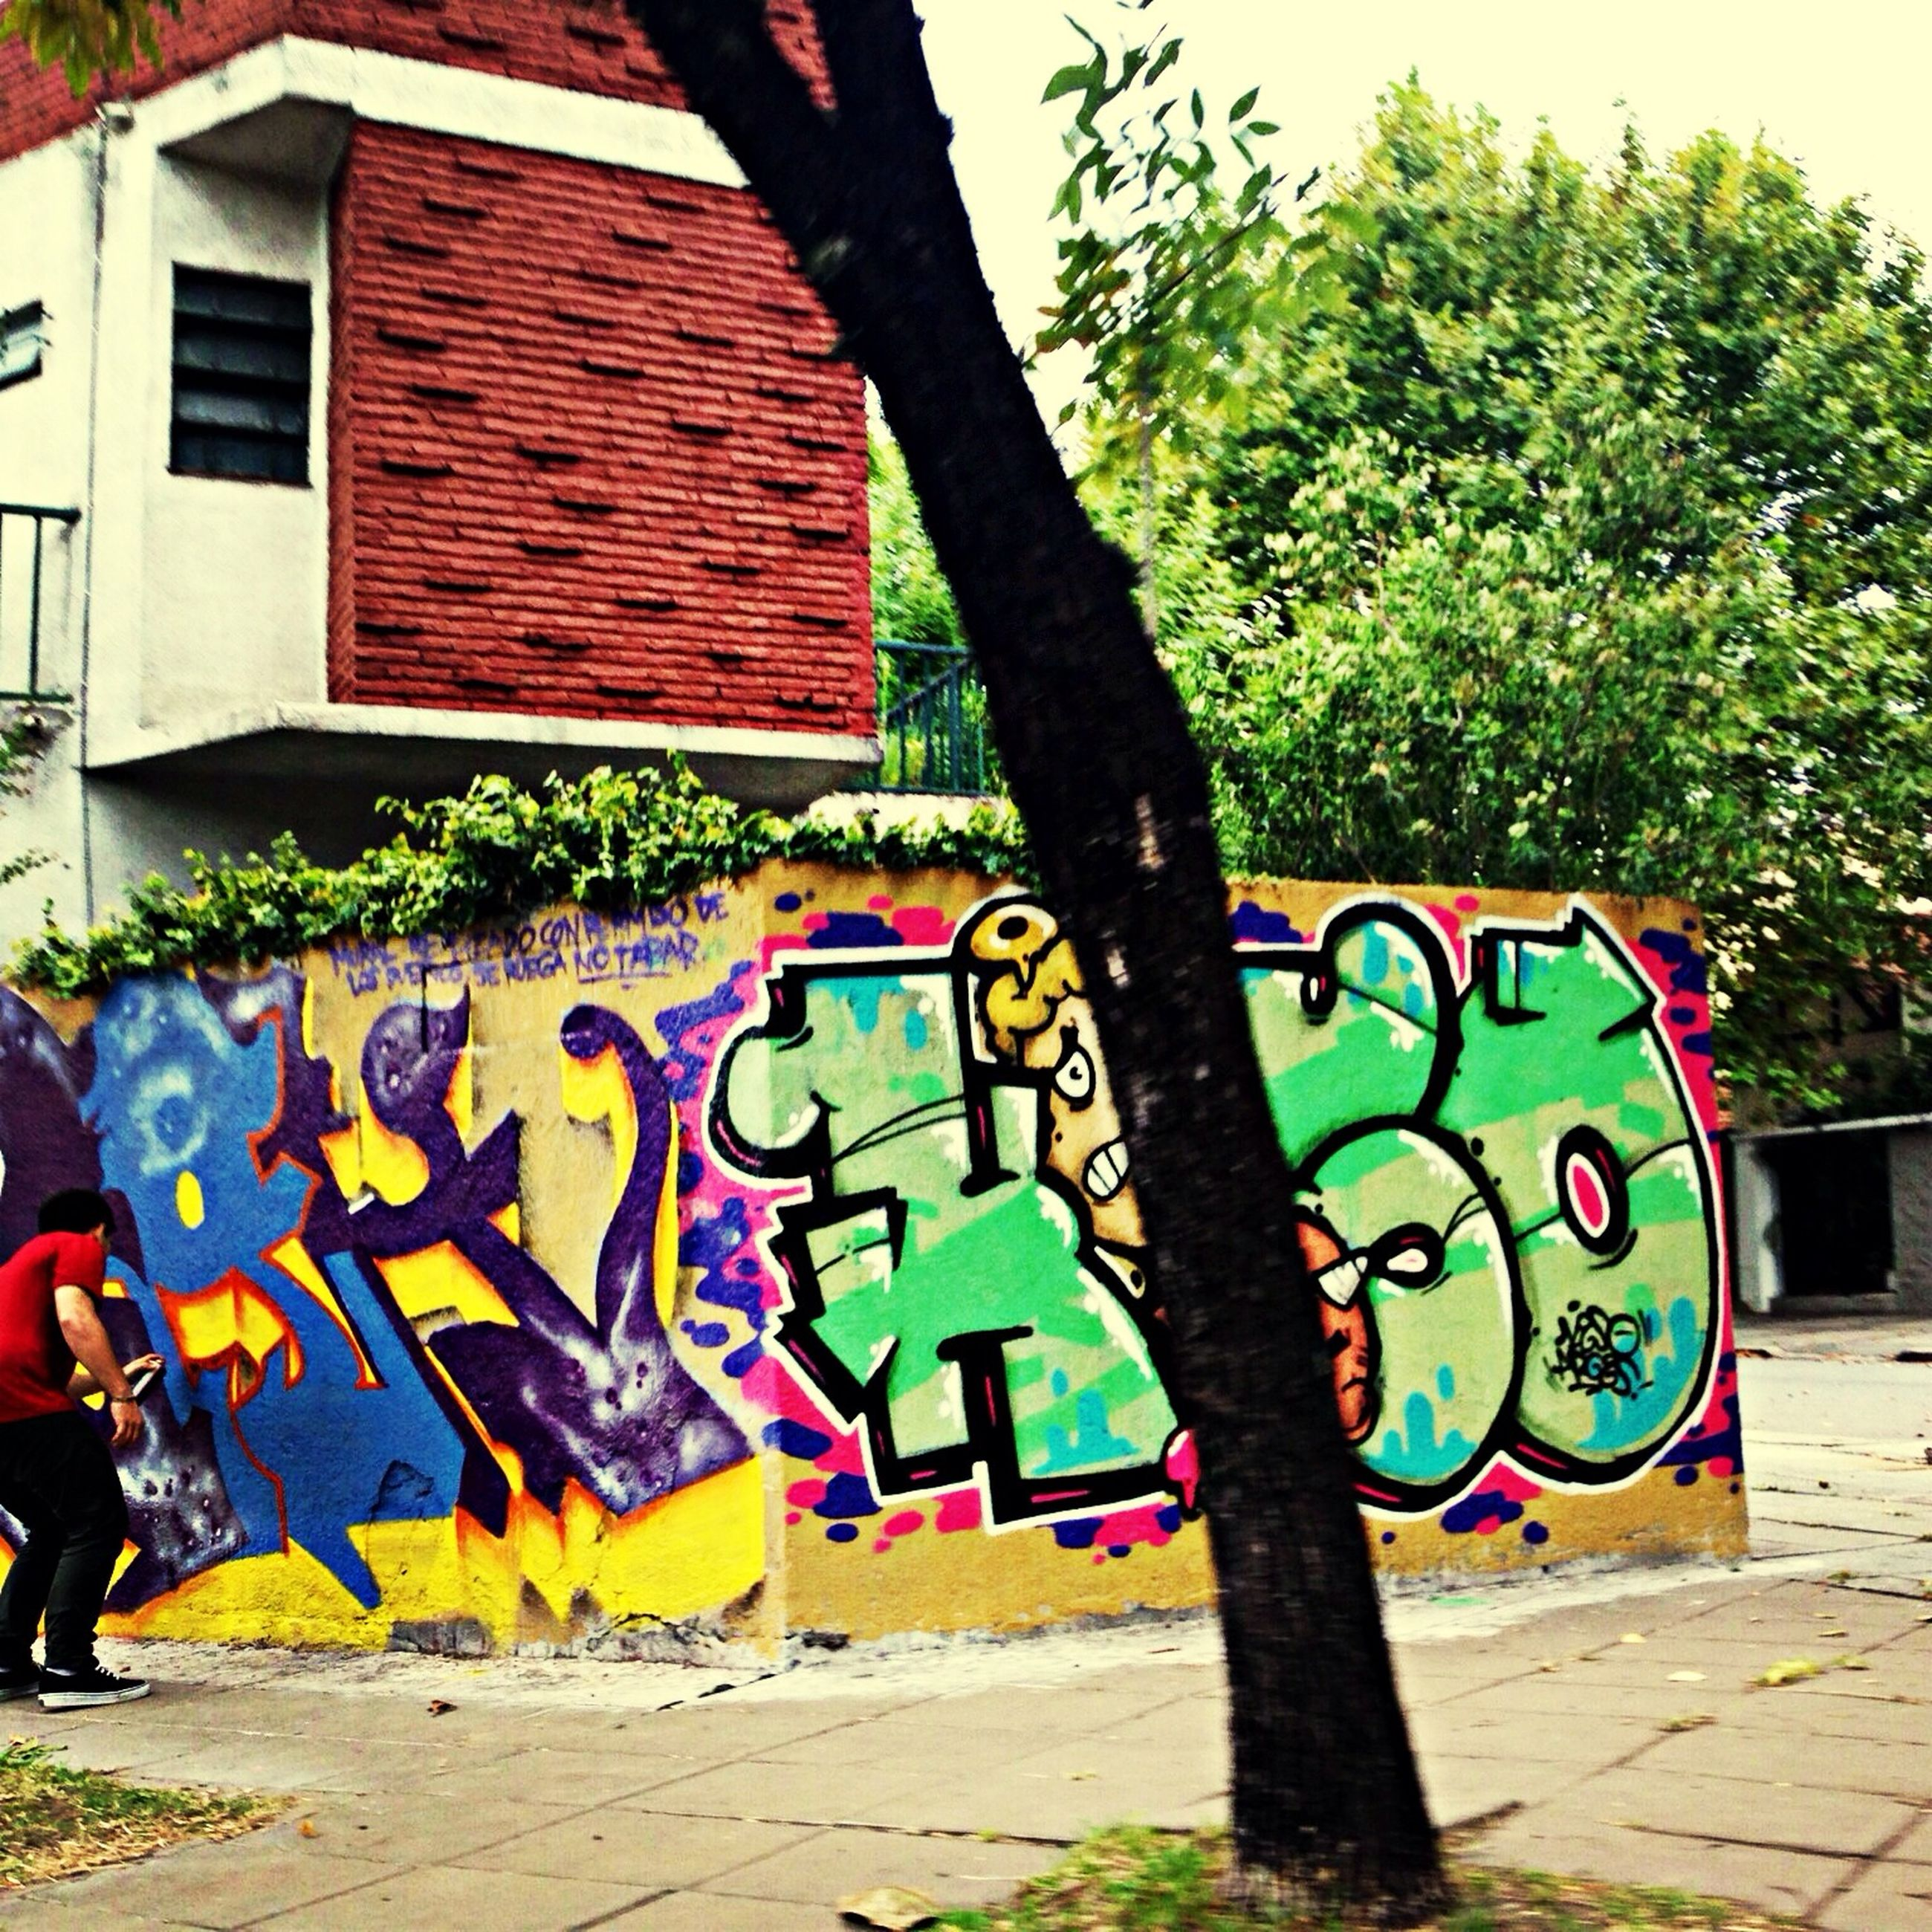 graffiti, art, creativity, art and craft, multi colored, tree, street art, built structure, text, architecture, human representation, wall - building feature, building exterior, day, outdoors, animal representation, western script, colorful, mural, street